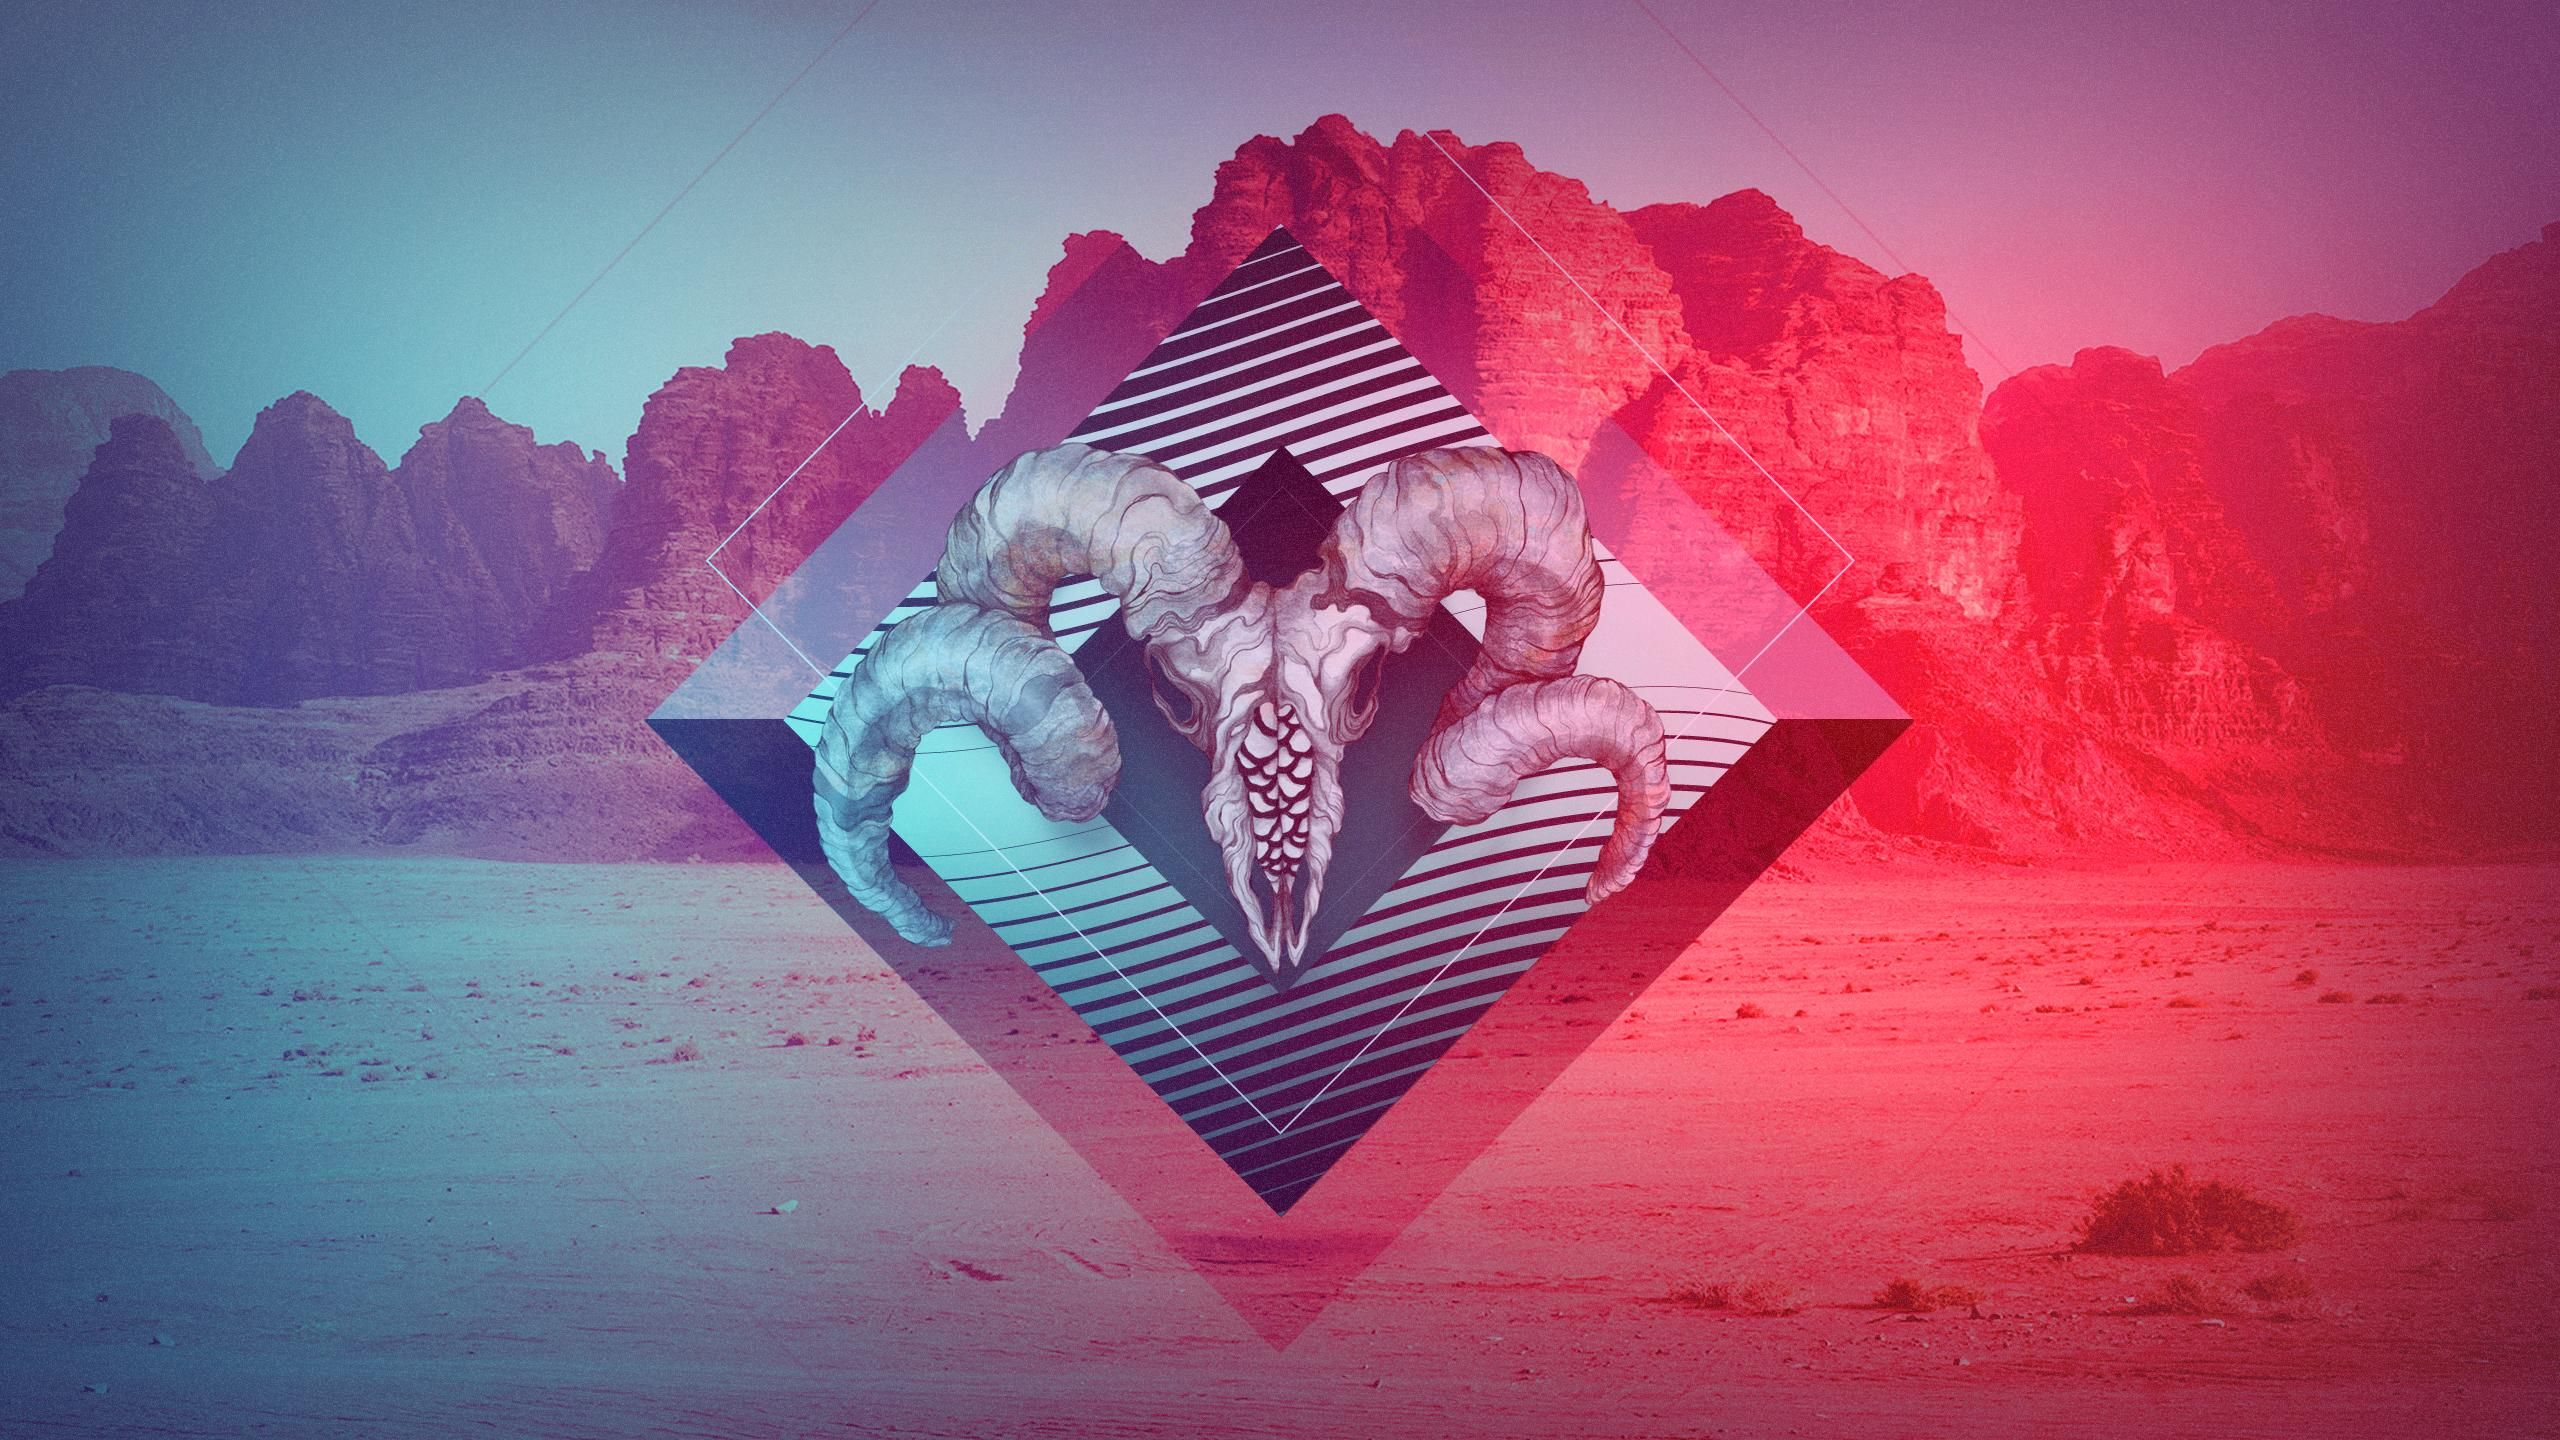 Hd wallpaper hipster - Funky Triangle Hipster Design Plus A Ram